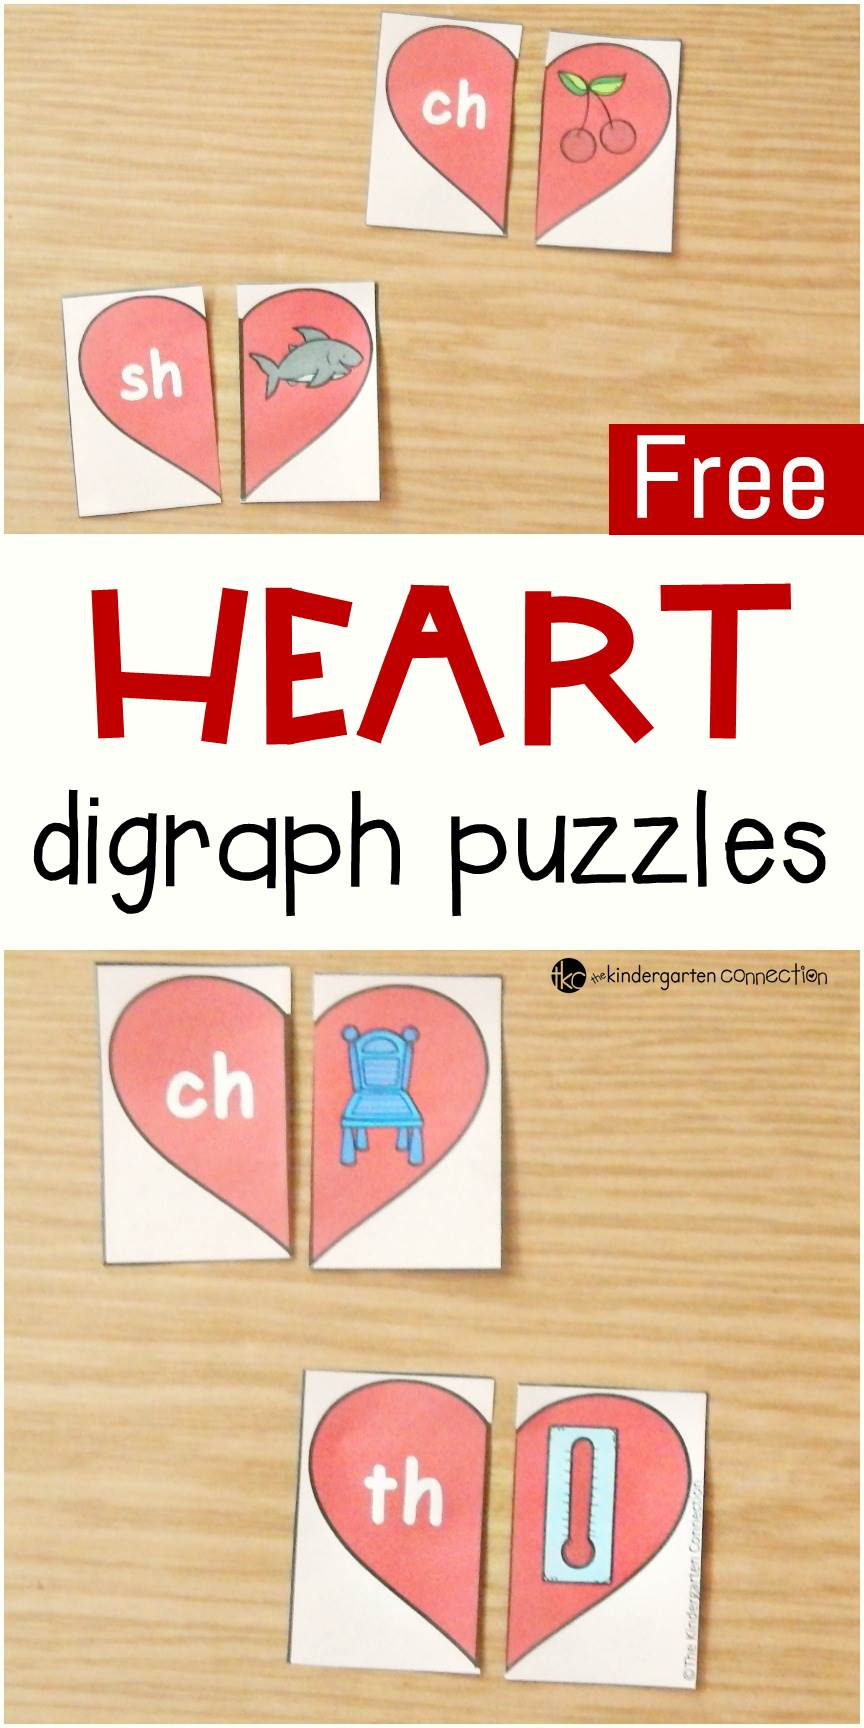 These heart-themed digraph puzzles are perfect for working on beginning digraph sounds sh, ch, th, and wh with early readers this Valentine's Day!